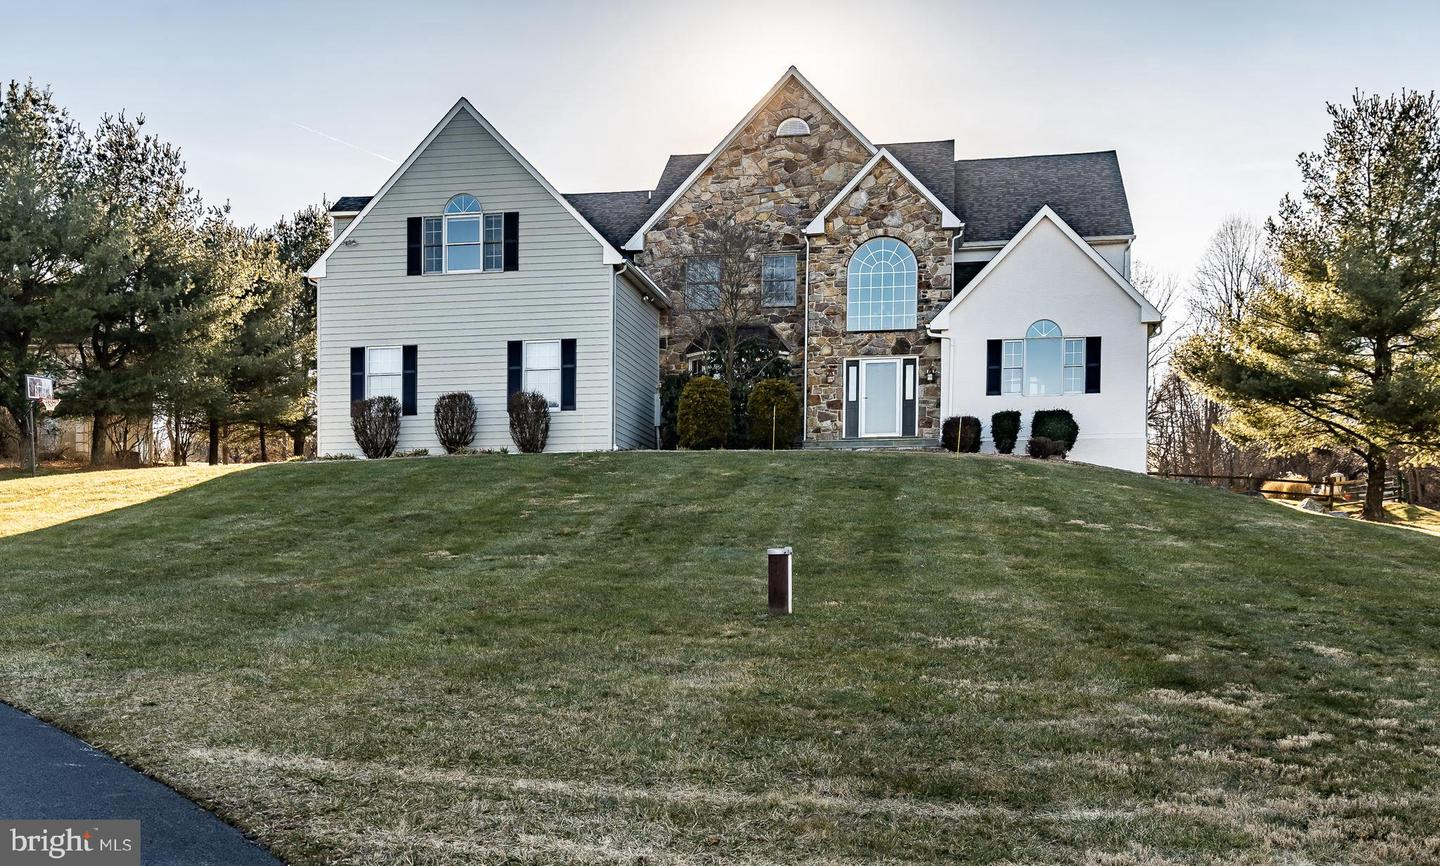 Mls Pact528486 Chester Springs Pa 19425